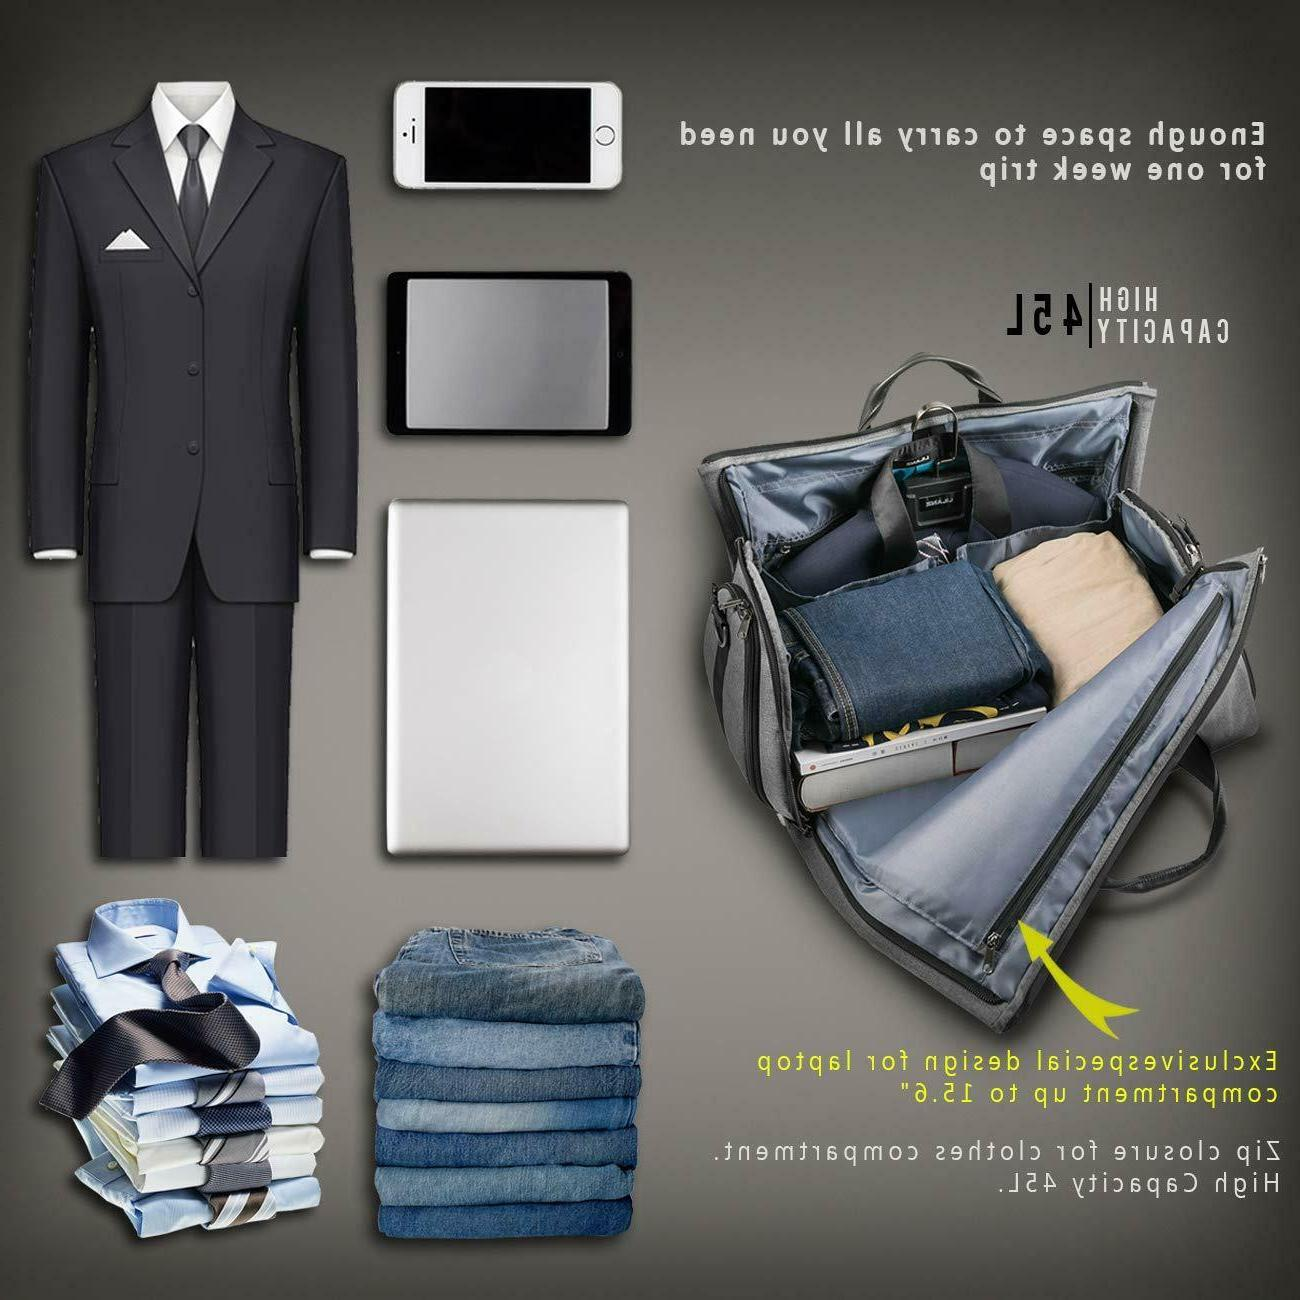 BUG Travel and Garment Bag 2 in 1